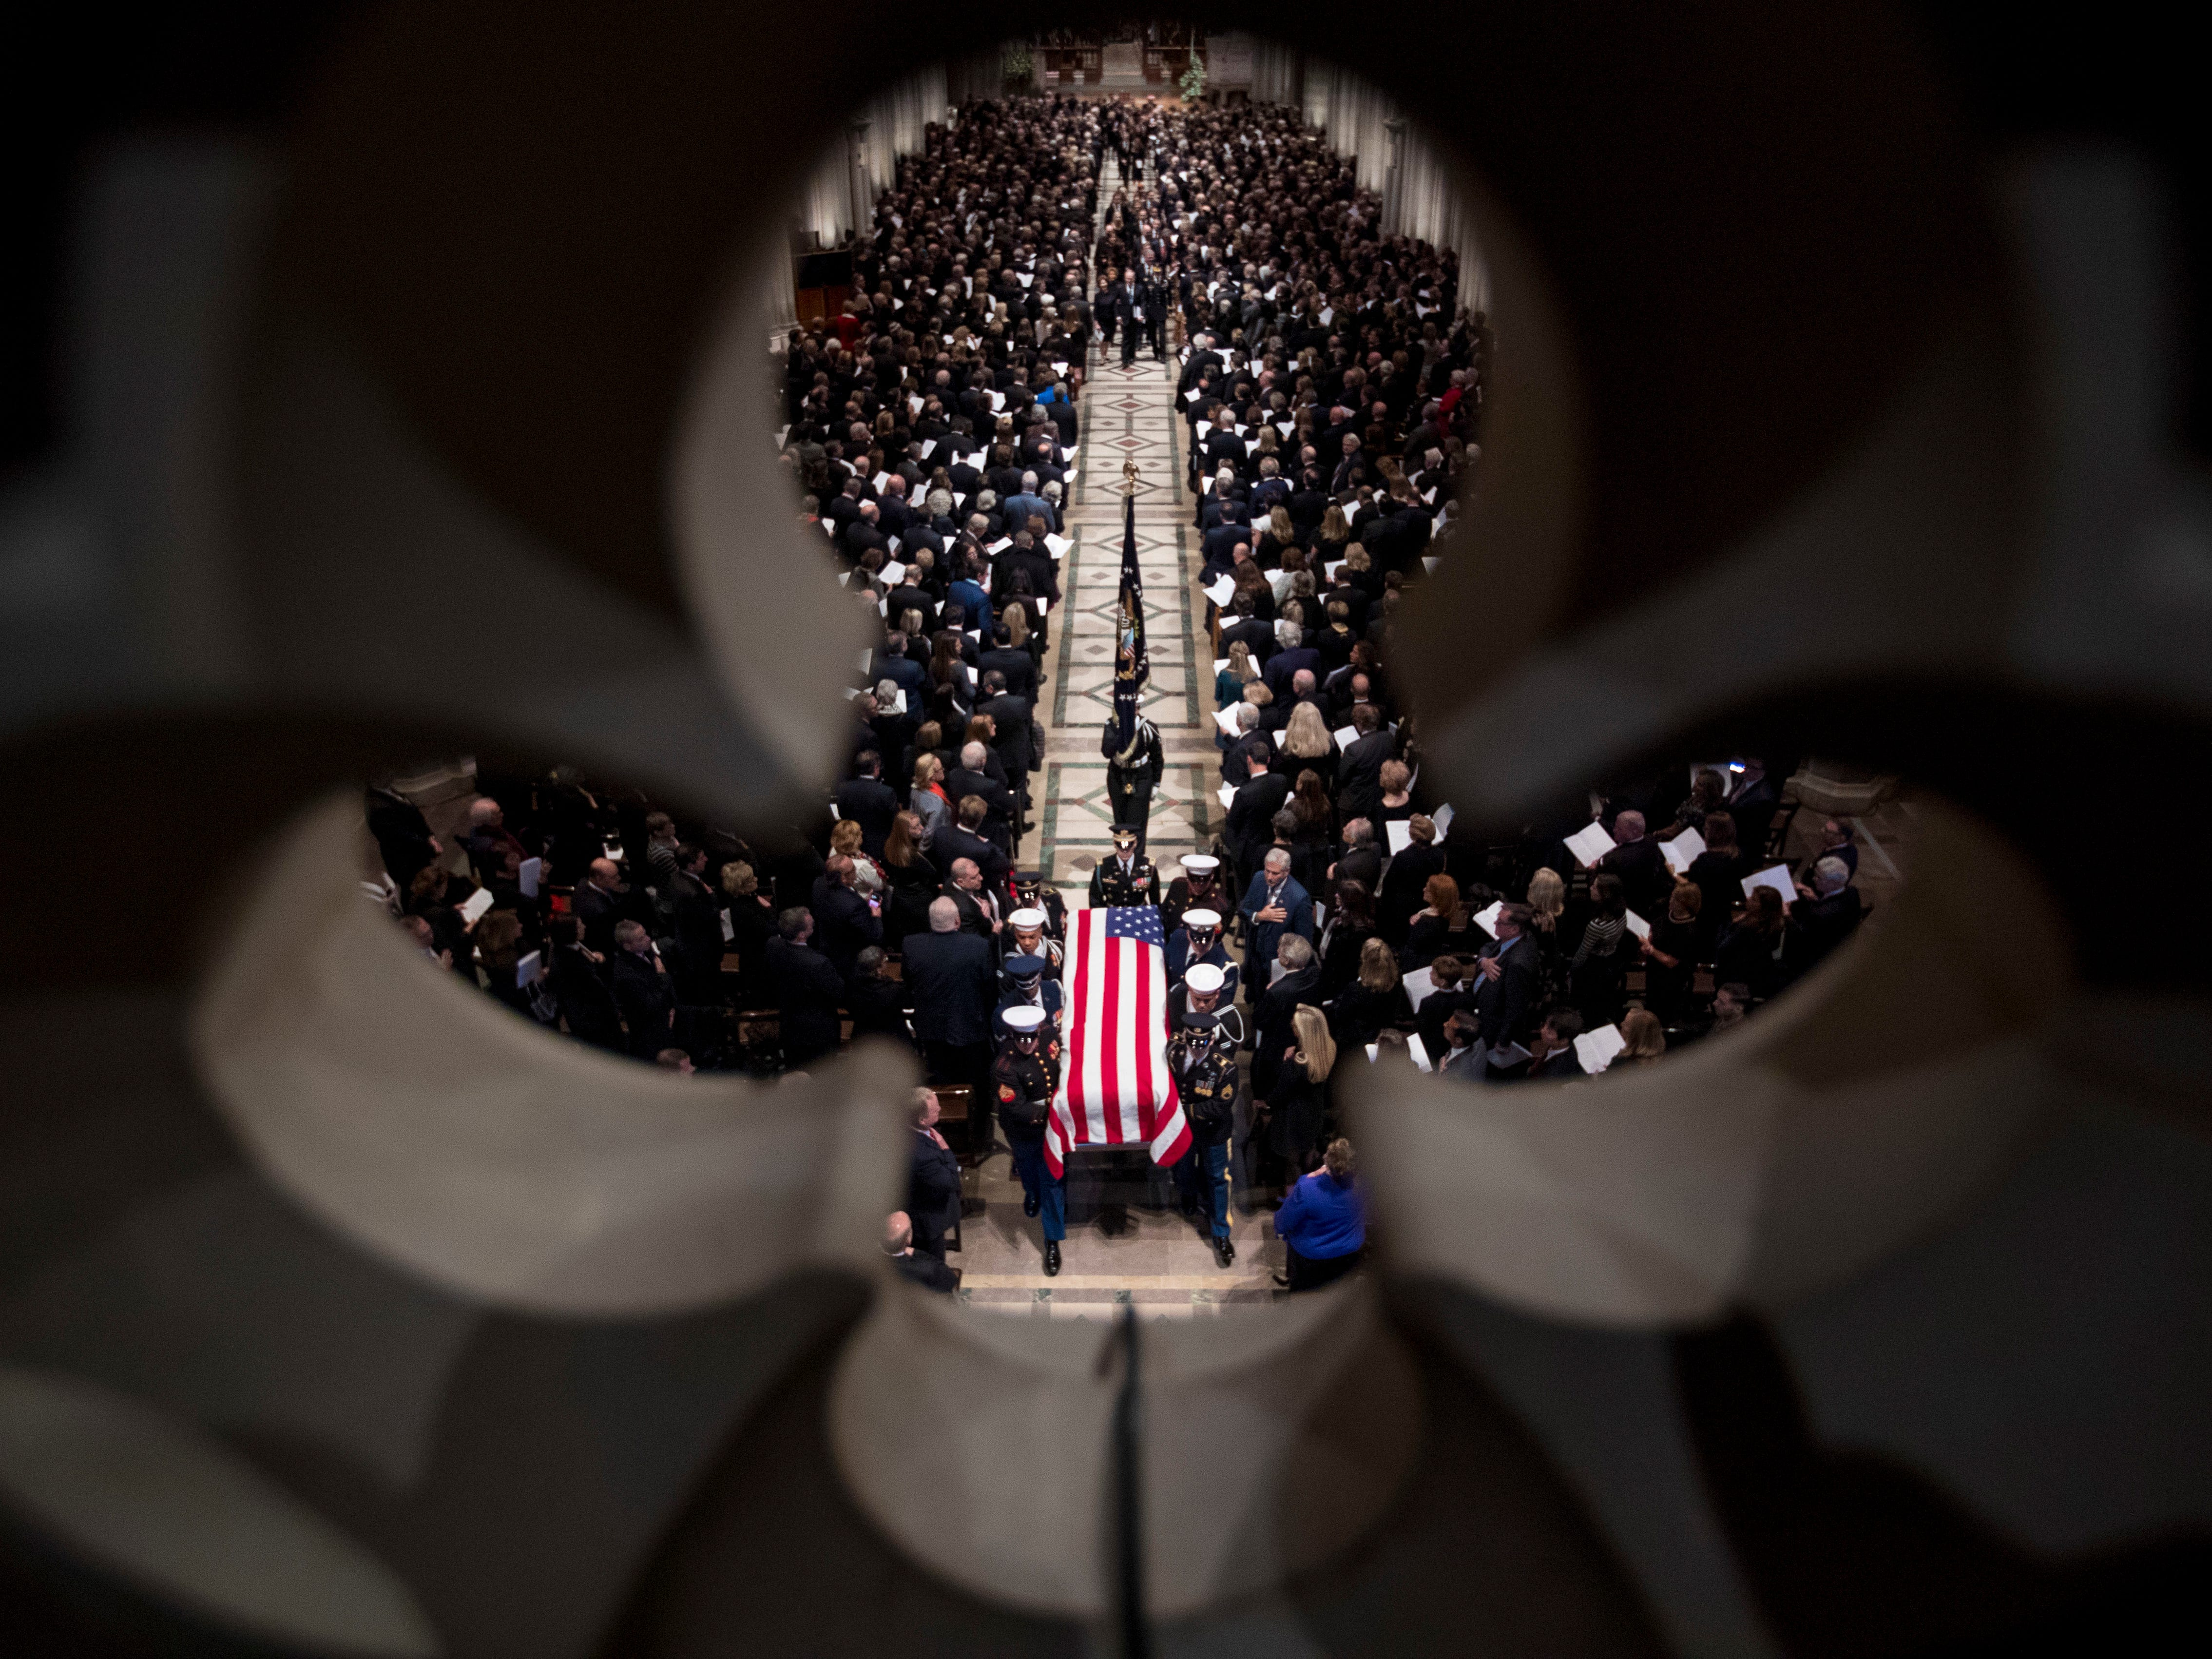 The flag-draped casket of former President George H.W. Bush is carried out by a military honor guard during a State Funeral at the National Cathedral, Wednesday, Dec. 5, 2018, in Washington.